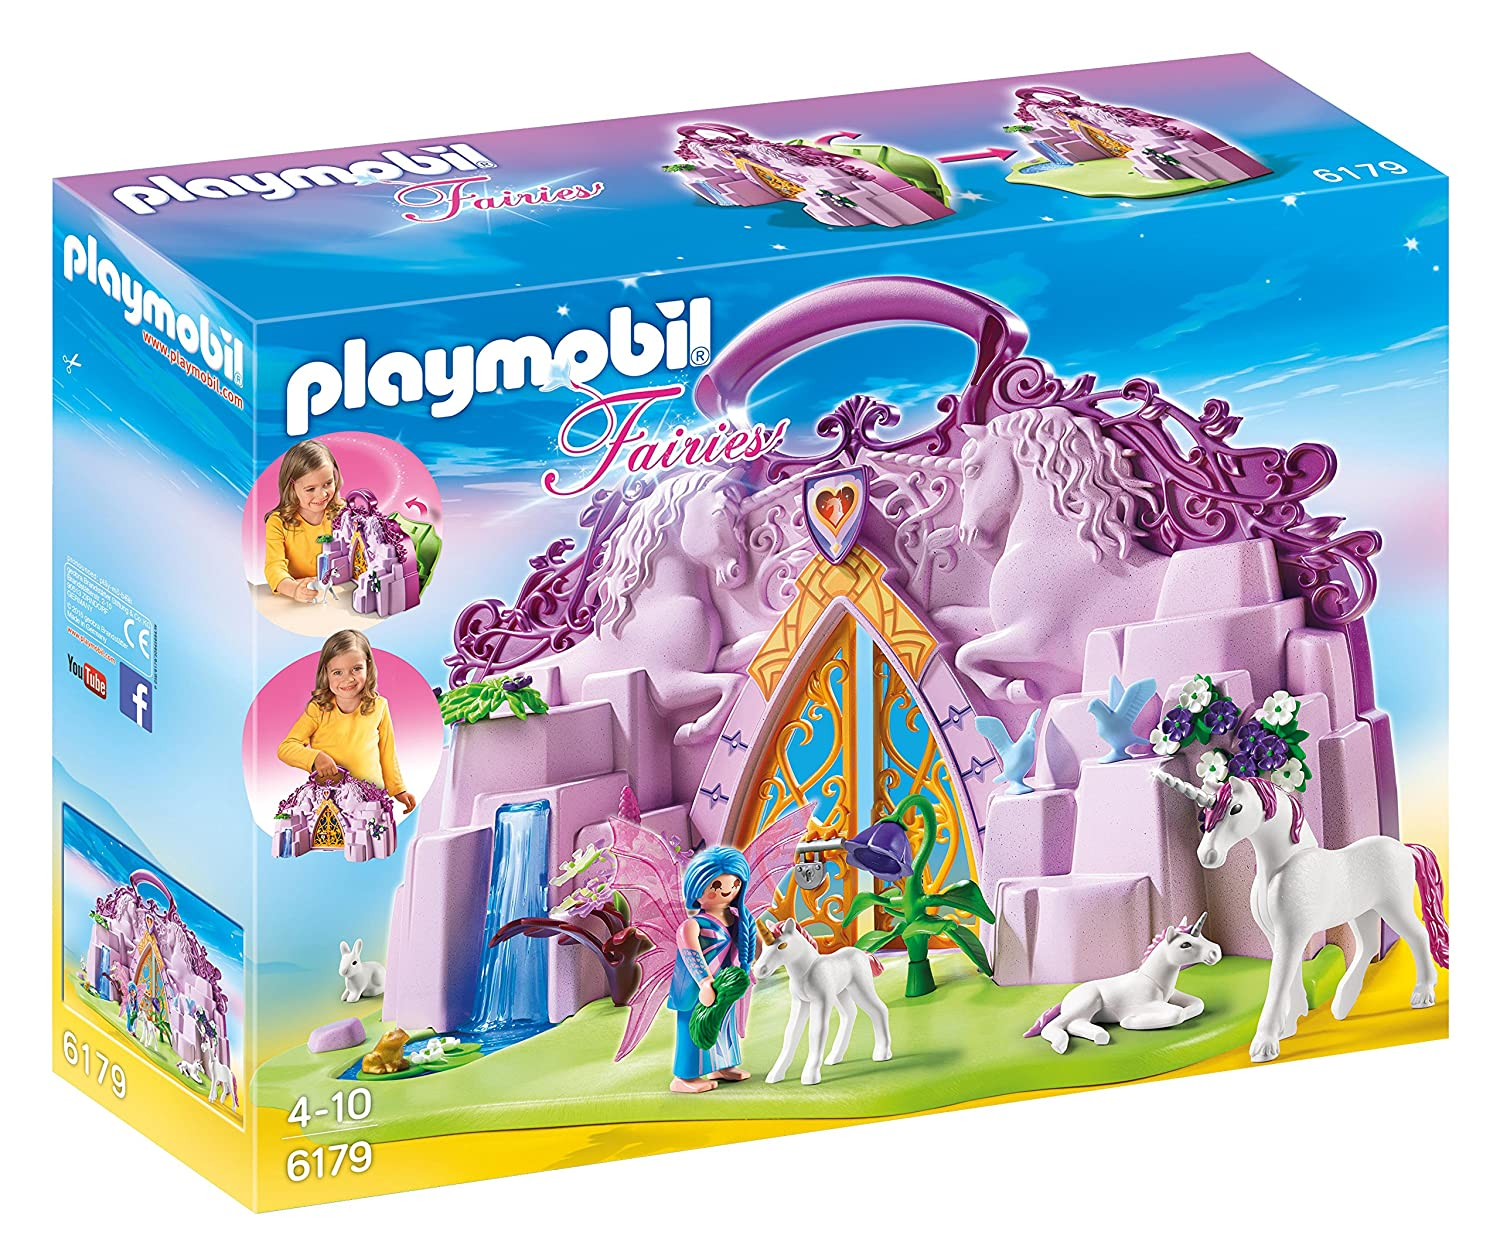 $26 (was $32.99) Playmobil Take Along Fairy Unicorn Garden Playsets